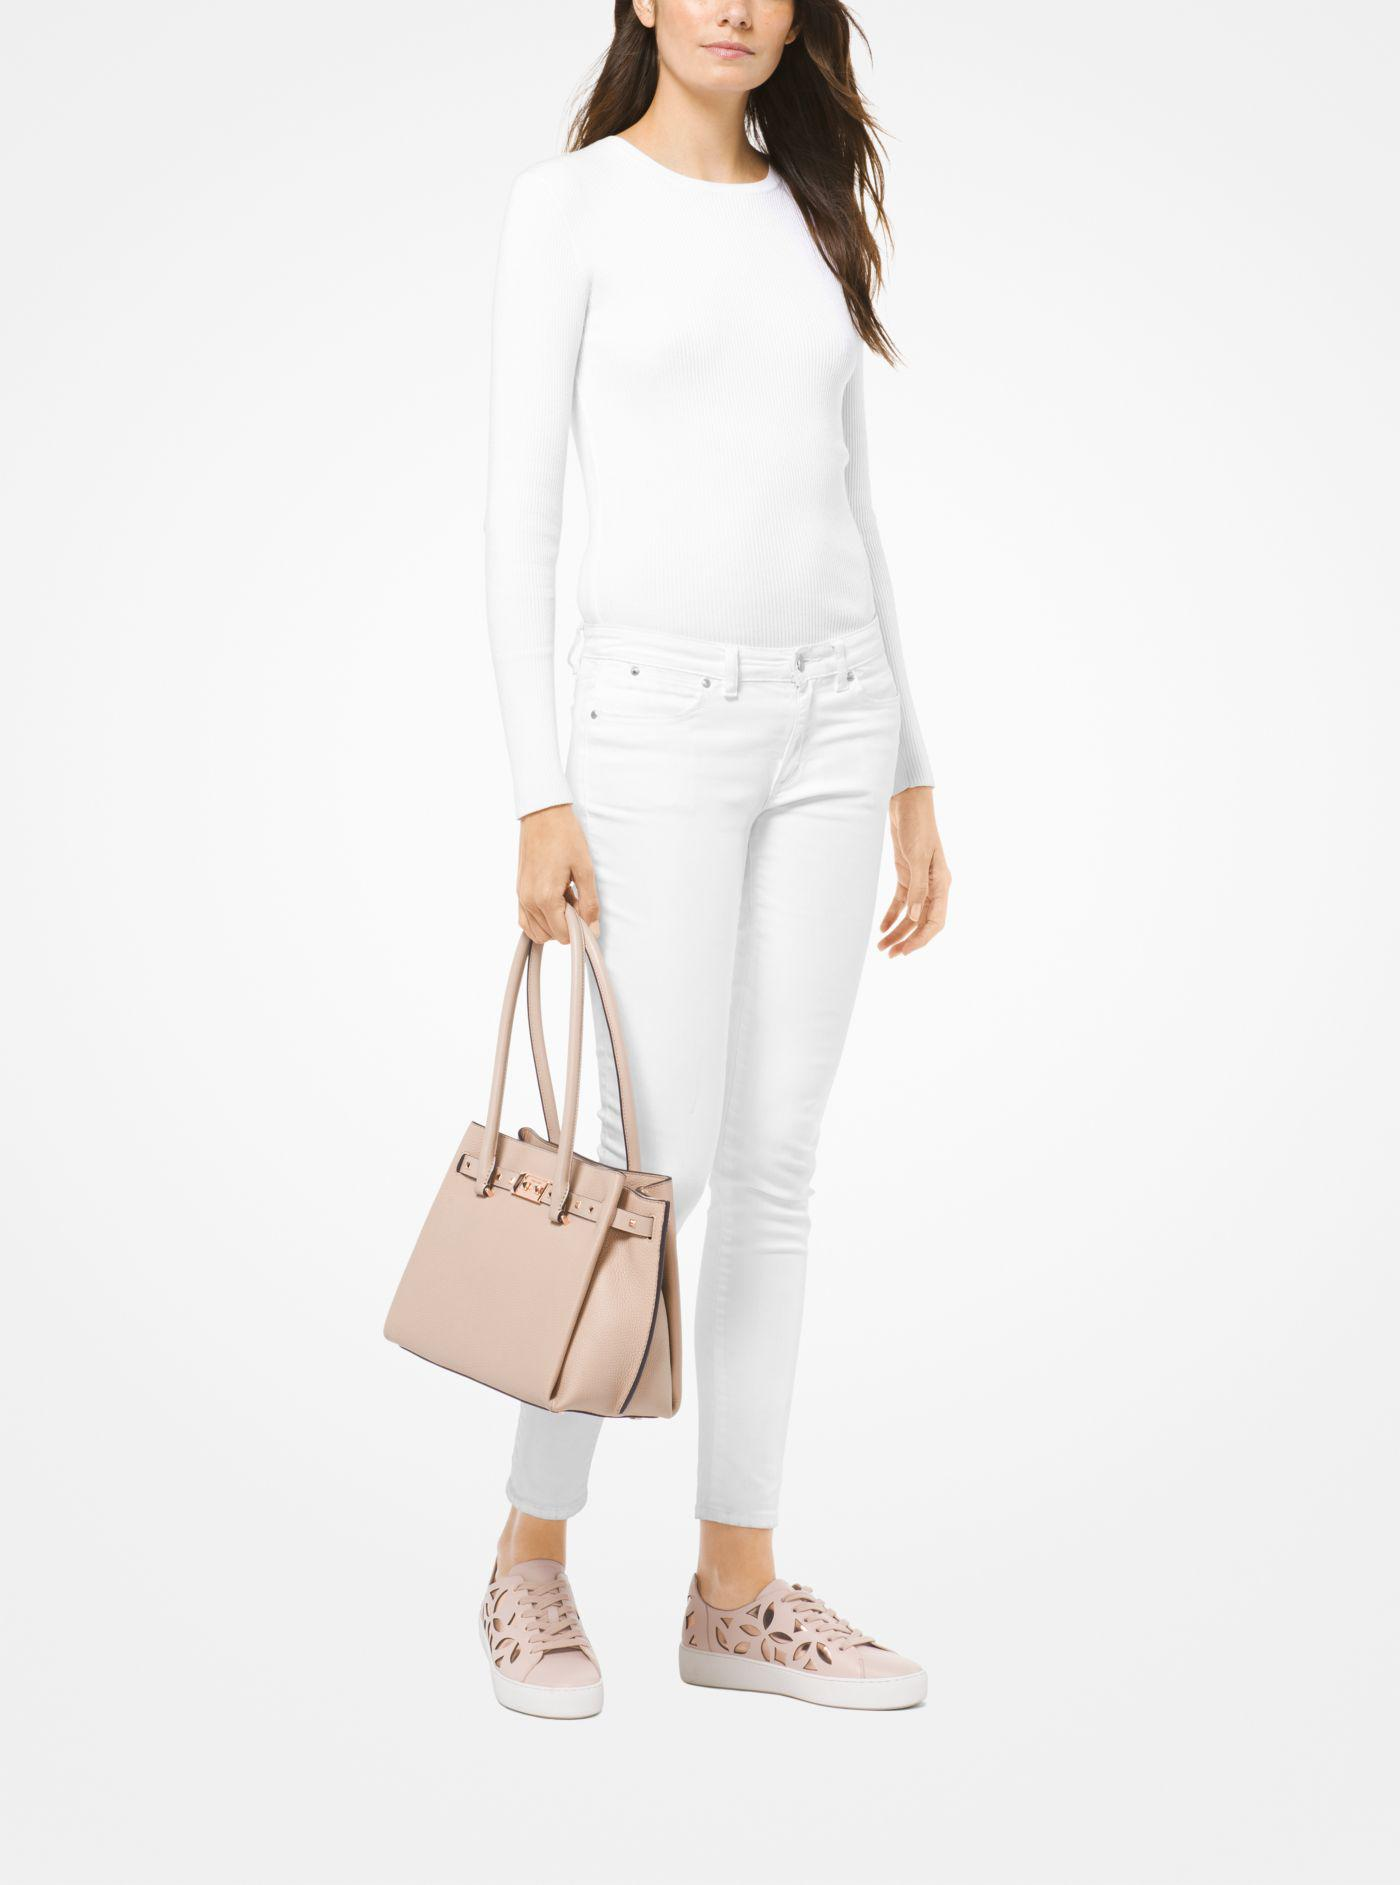 6e6648c74f2e Lyst - Michael Kors Addison Medium Pebbled Leather Tote in Pink